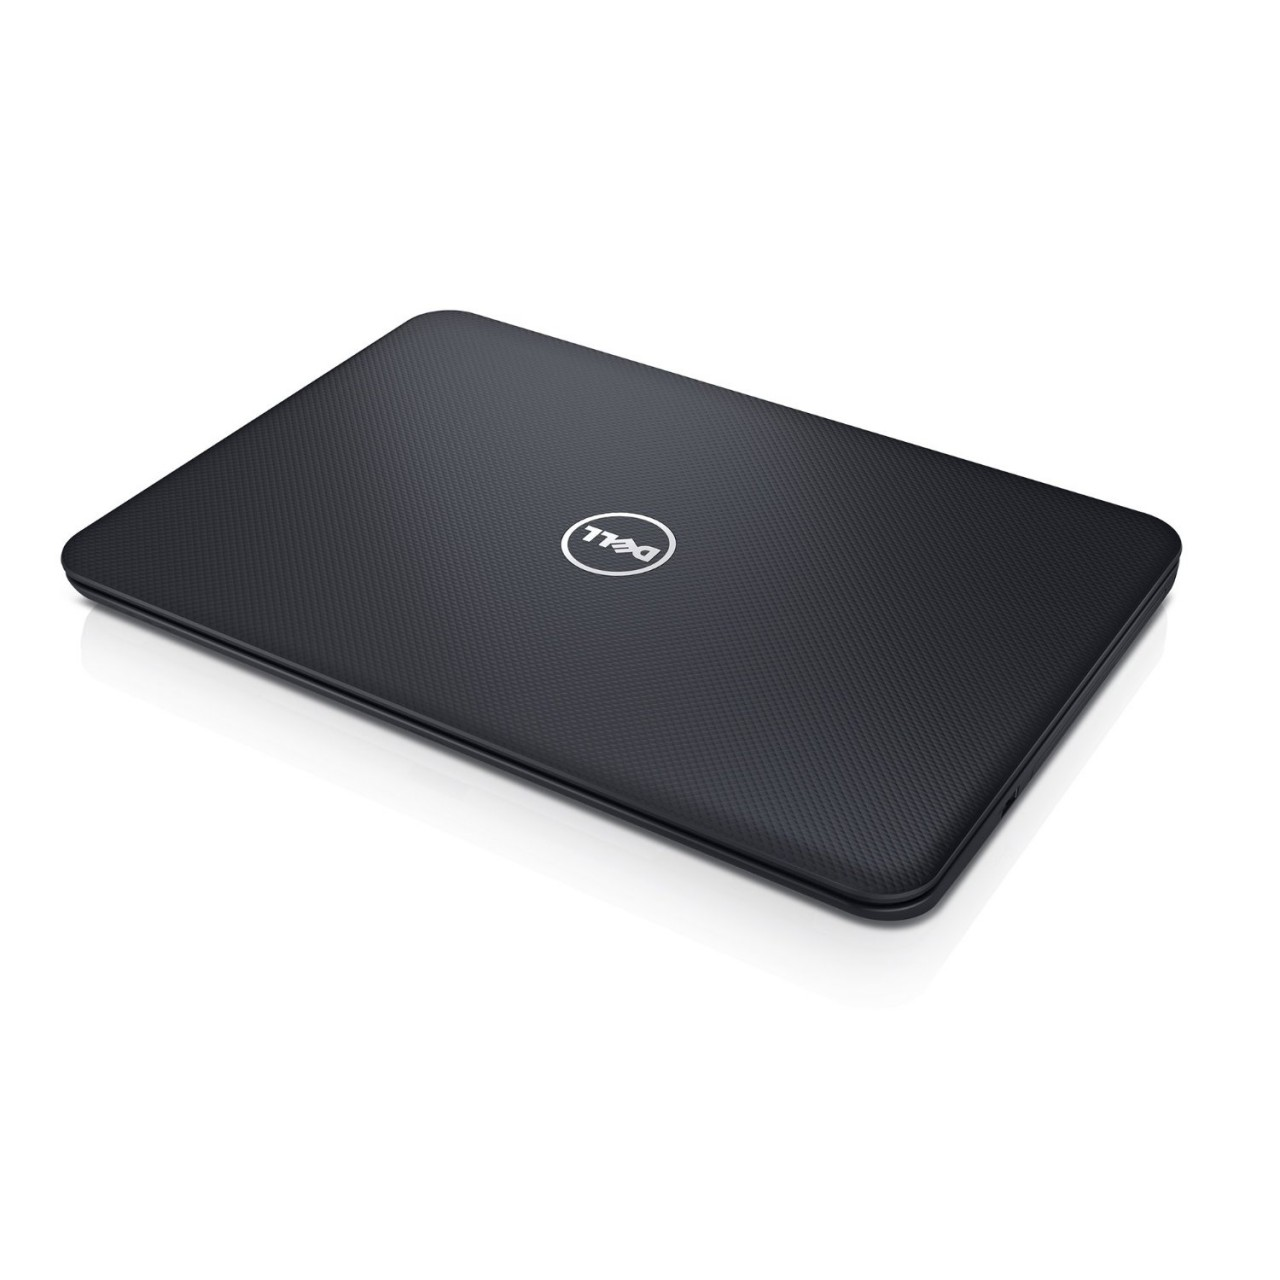 Dell inspiron i5-4200u : Chiropractic jobs in europe